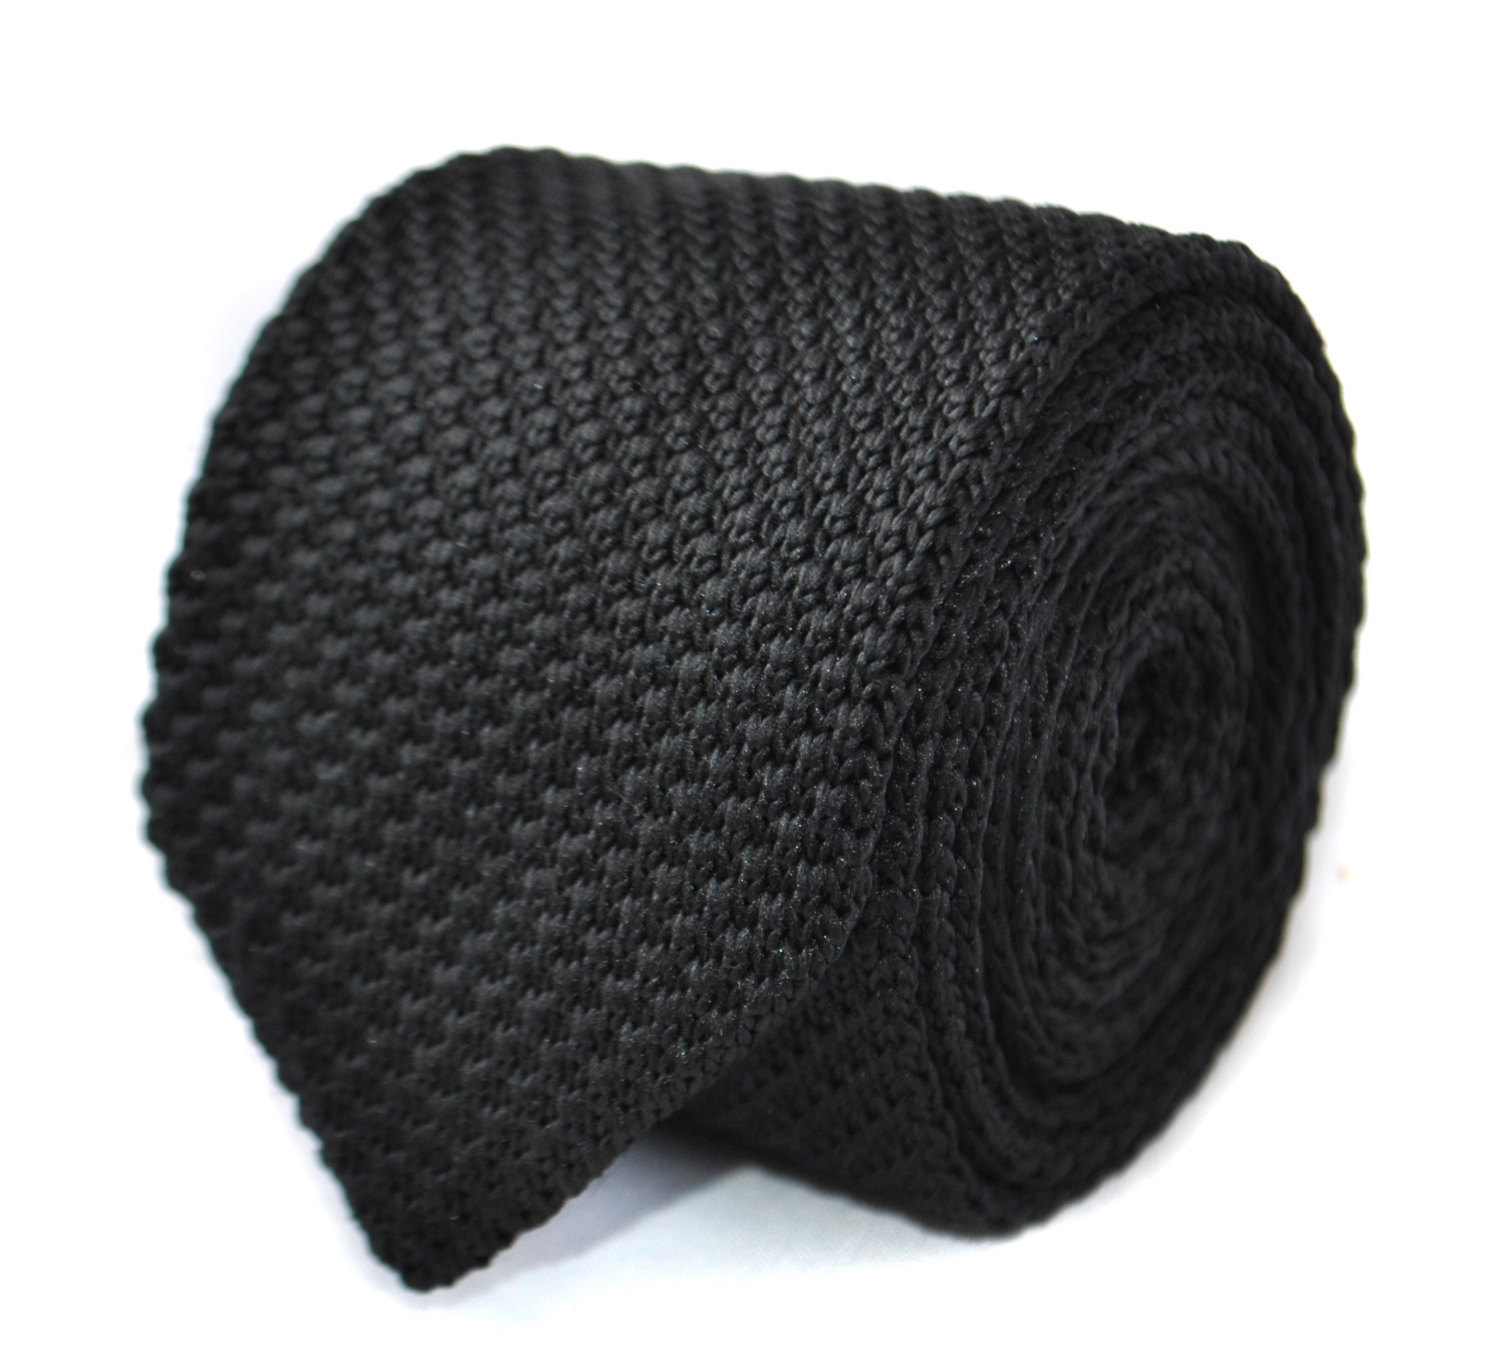 Plain black knitted tie with pointed end in standard 8cm width by Frederick Thom